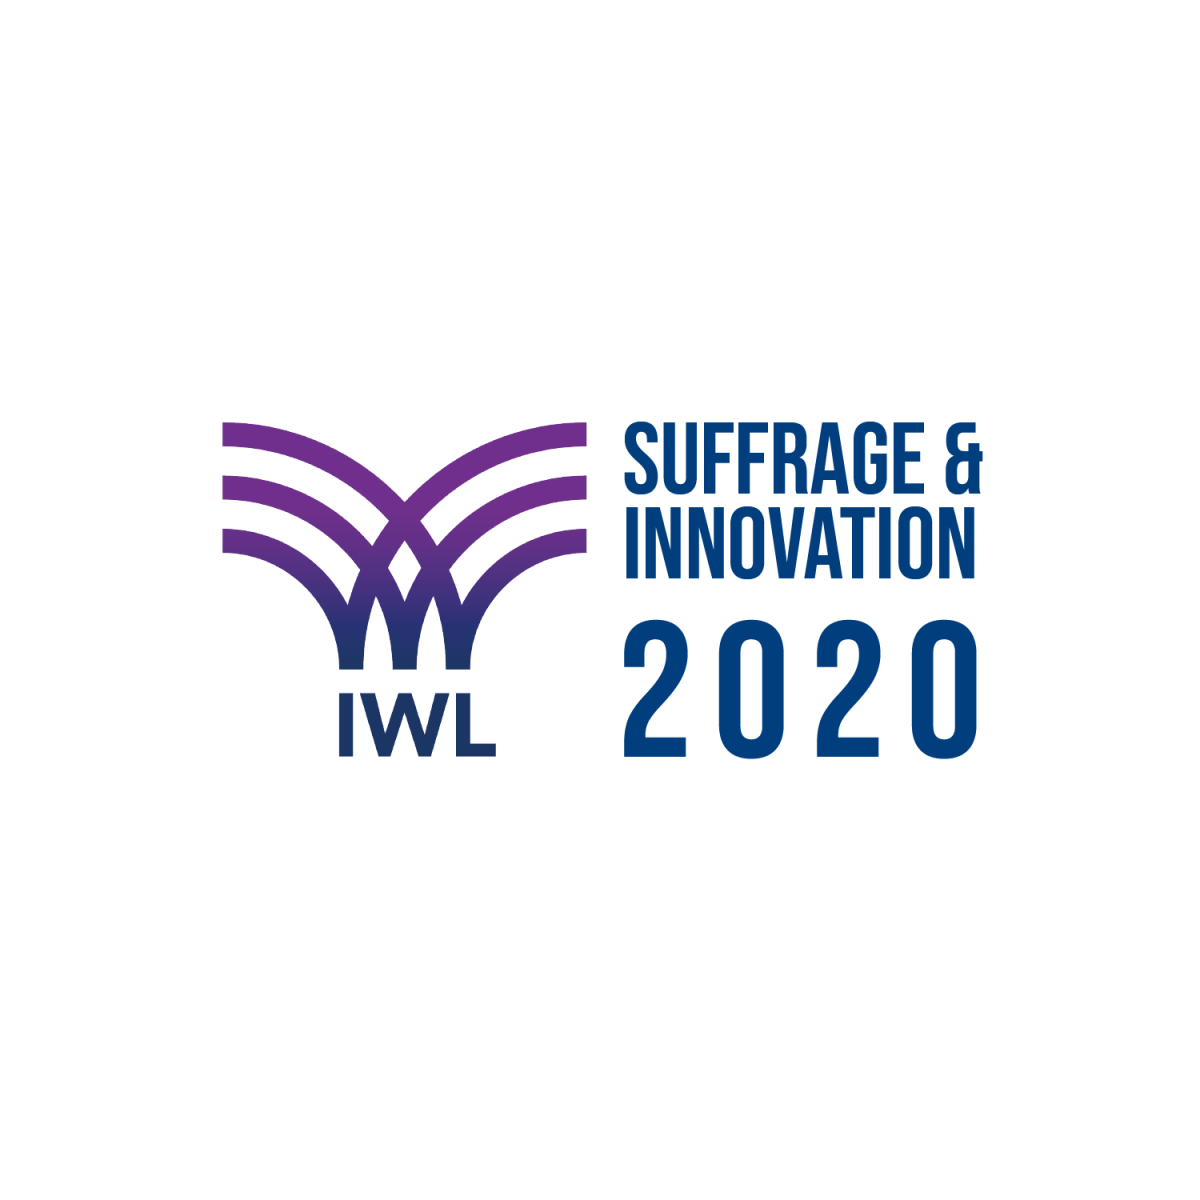 Institute for Women's Leadership to host Suffrage and Innovation 2020 conference